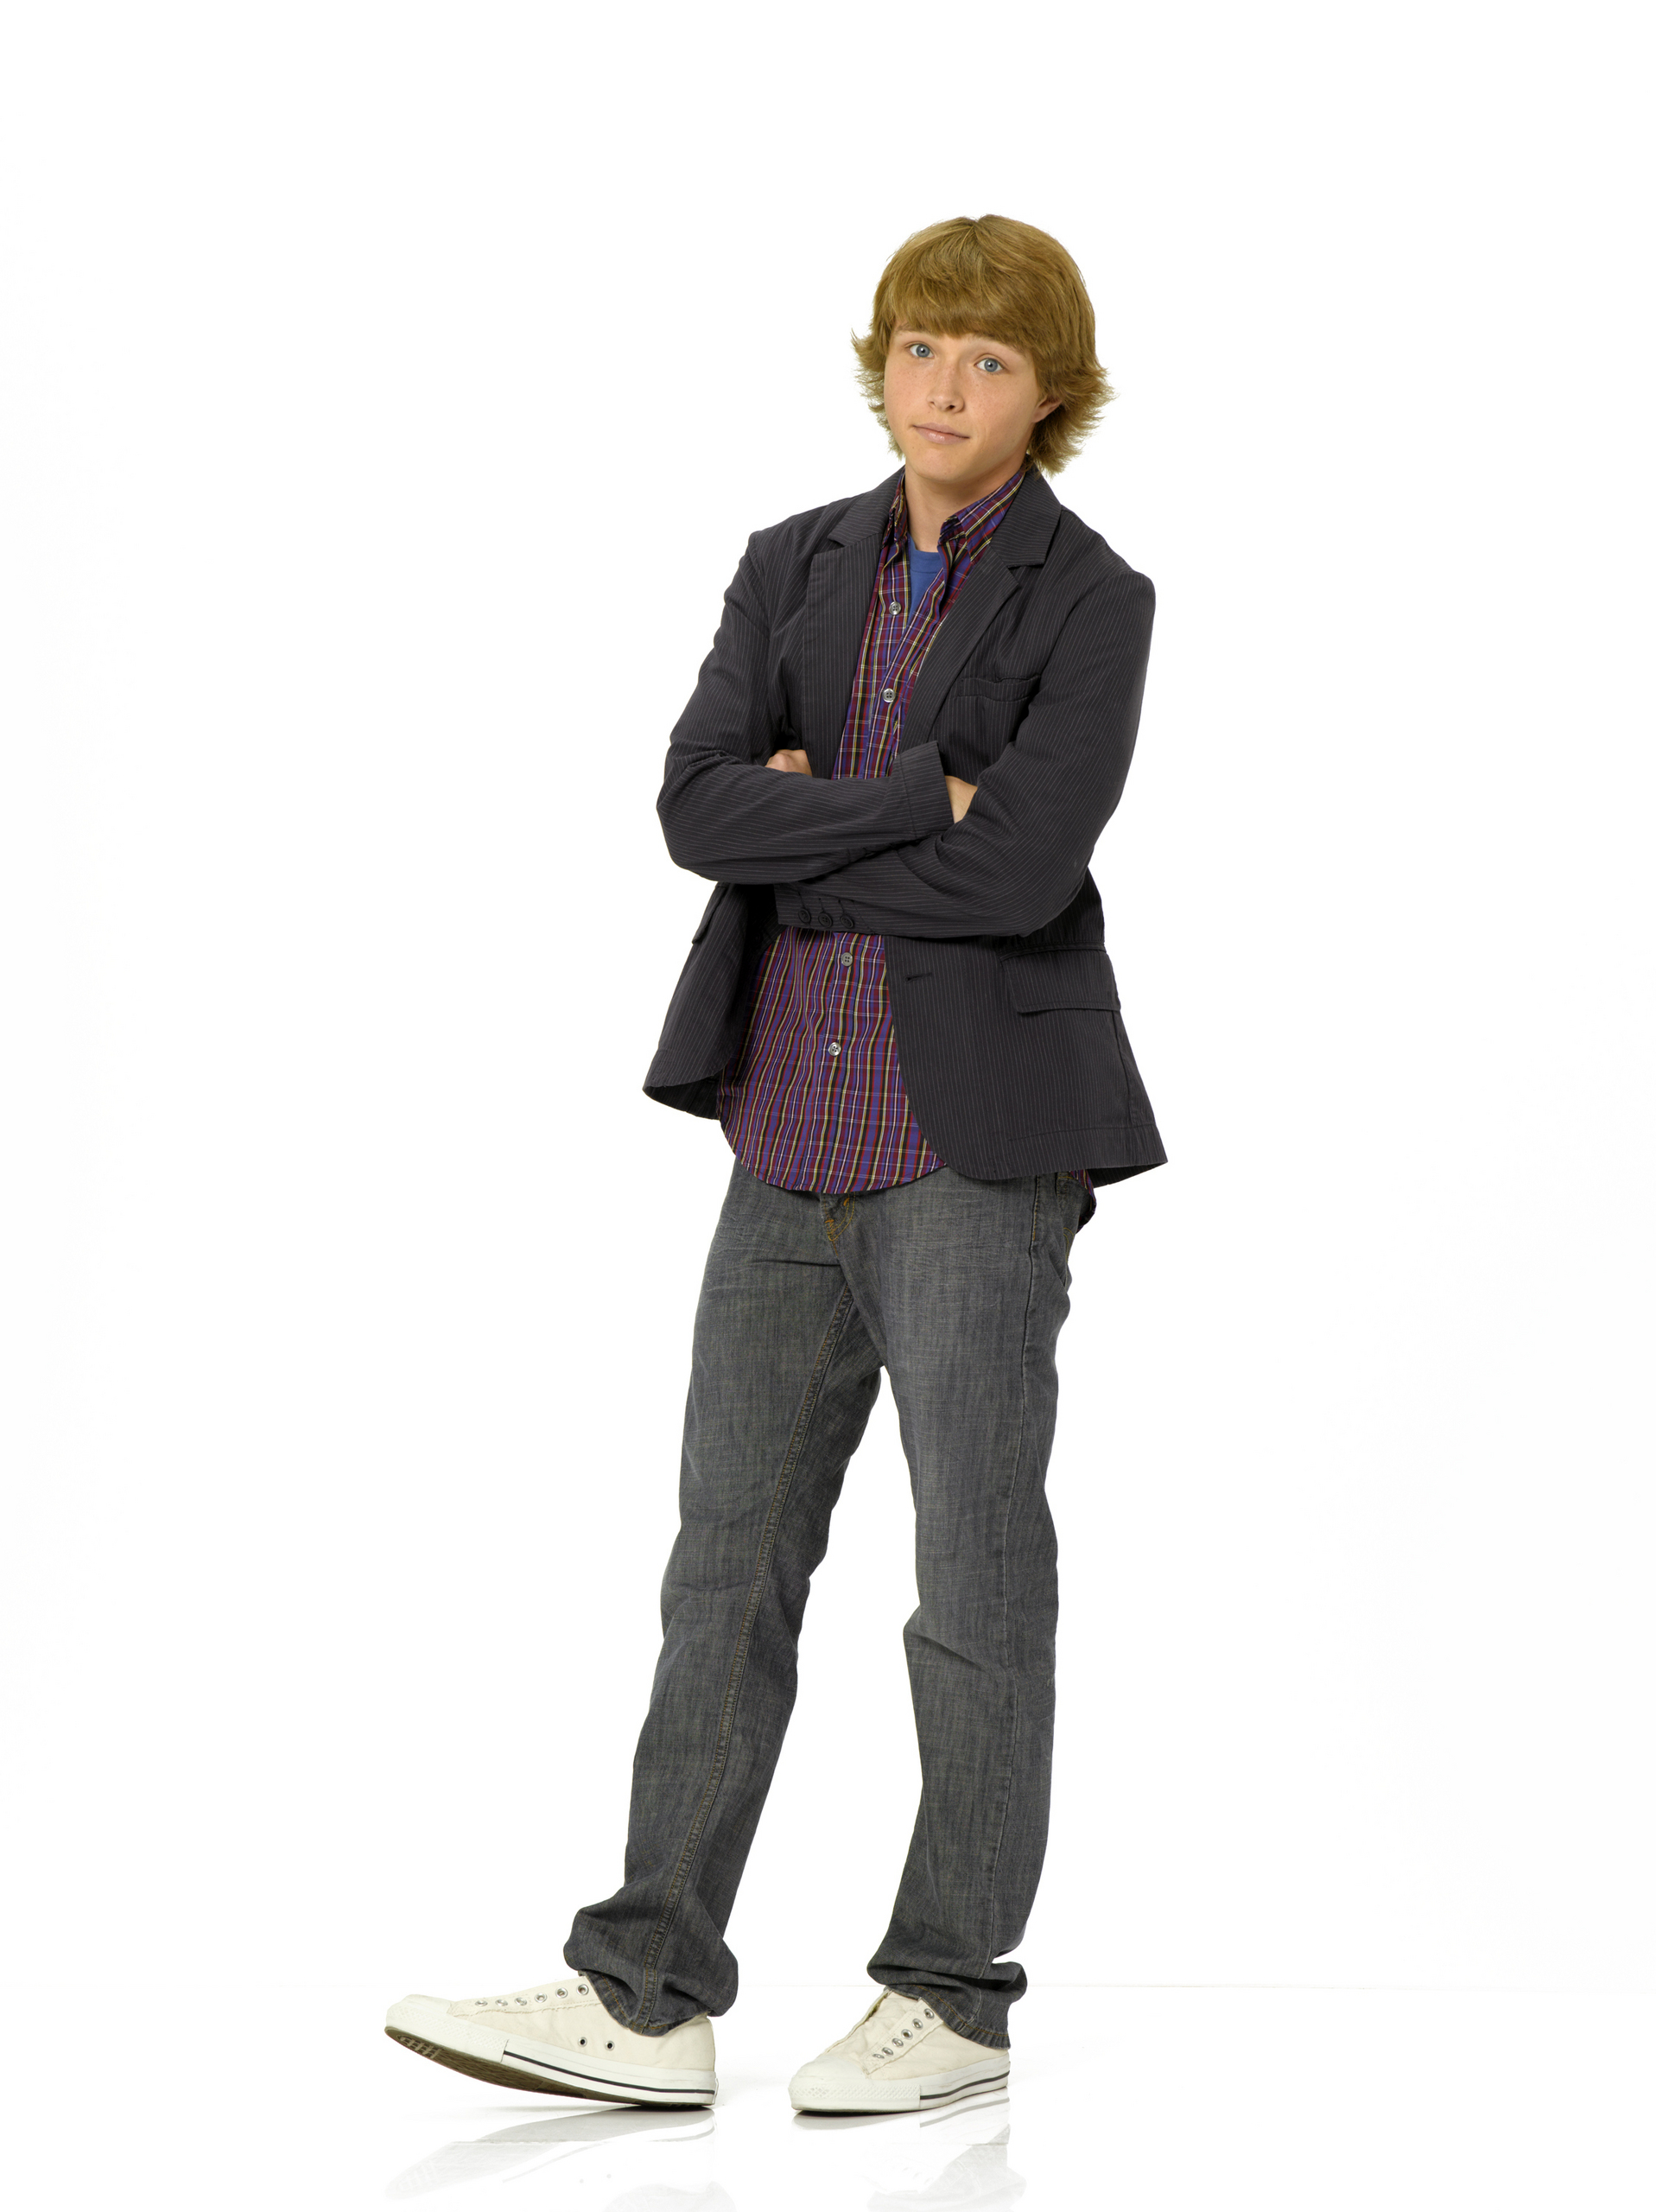 http://images2.fanpop.com/images/photos/8100000/Sterling-Knight-sterling-knight-8153671-1917-2560.jpg